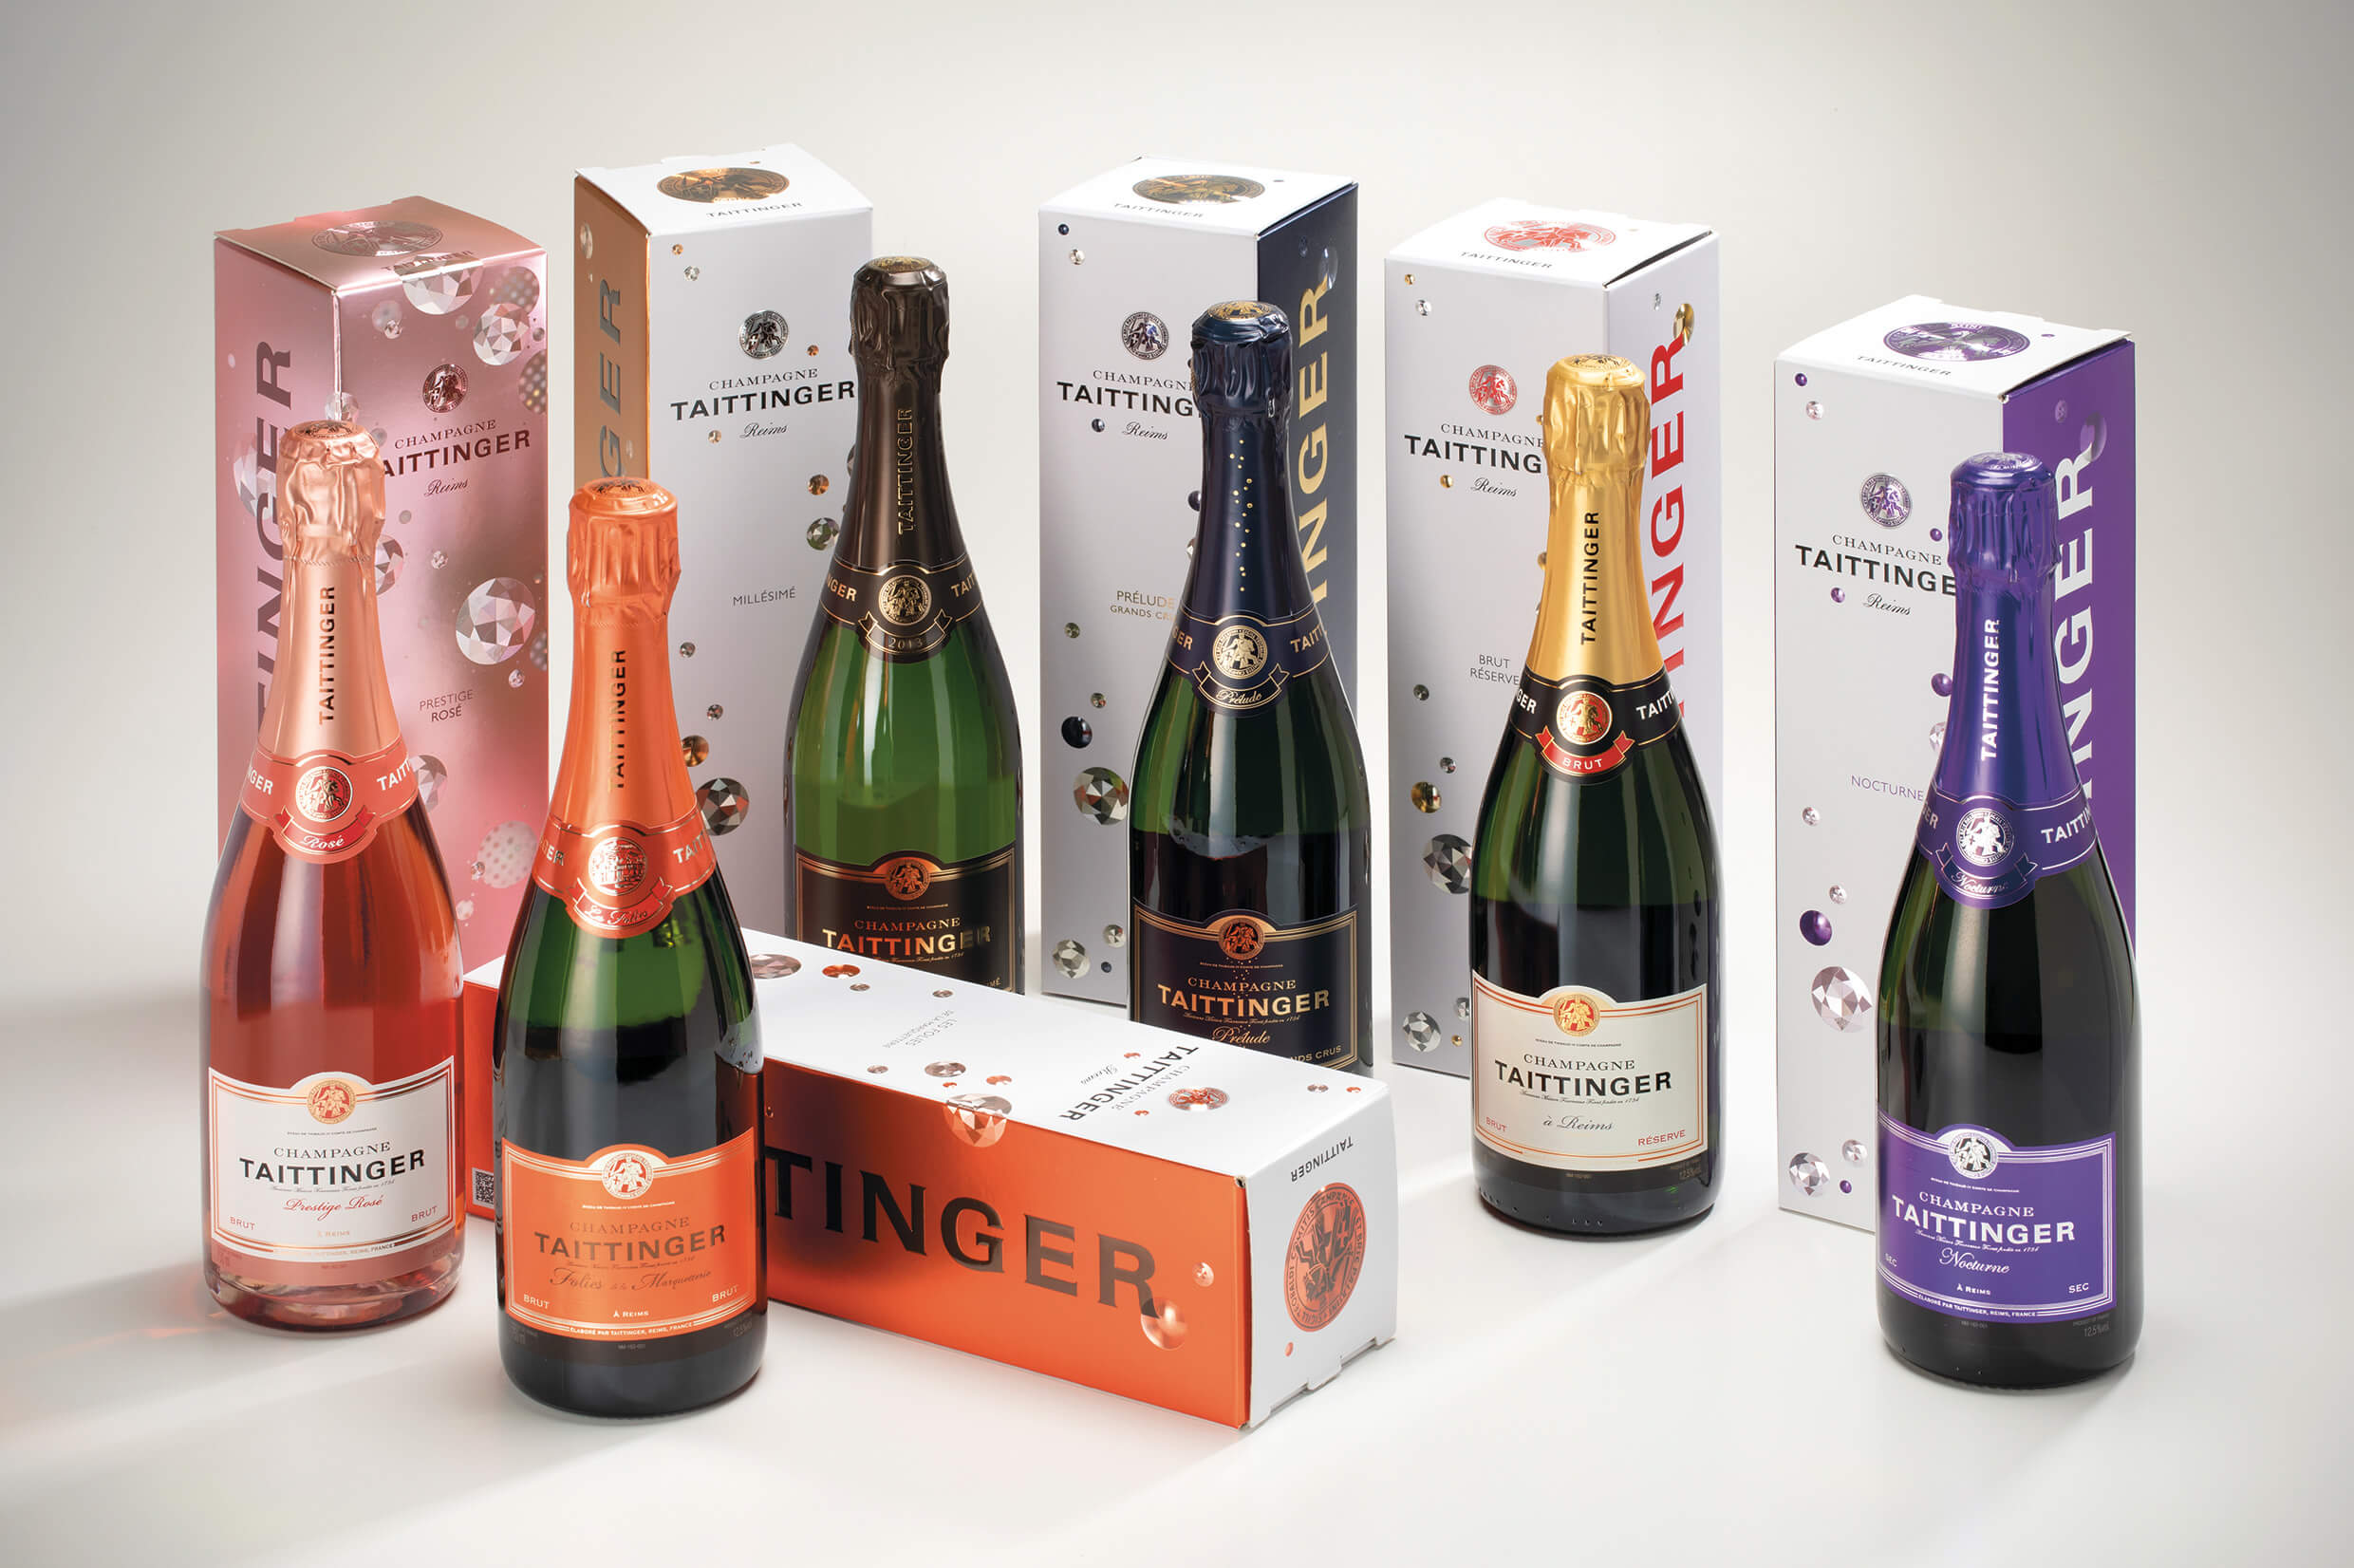 Taittinger range of bottle gift packs - 2020